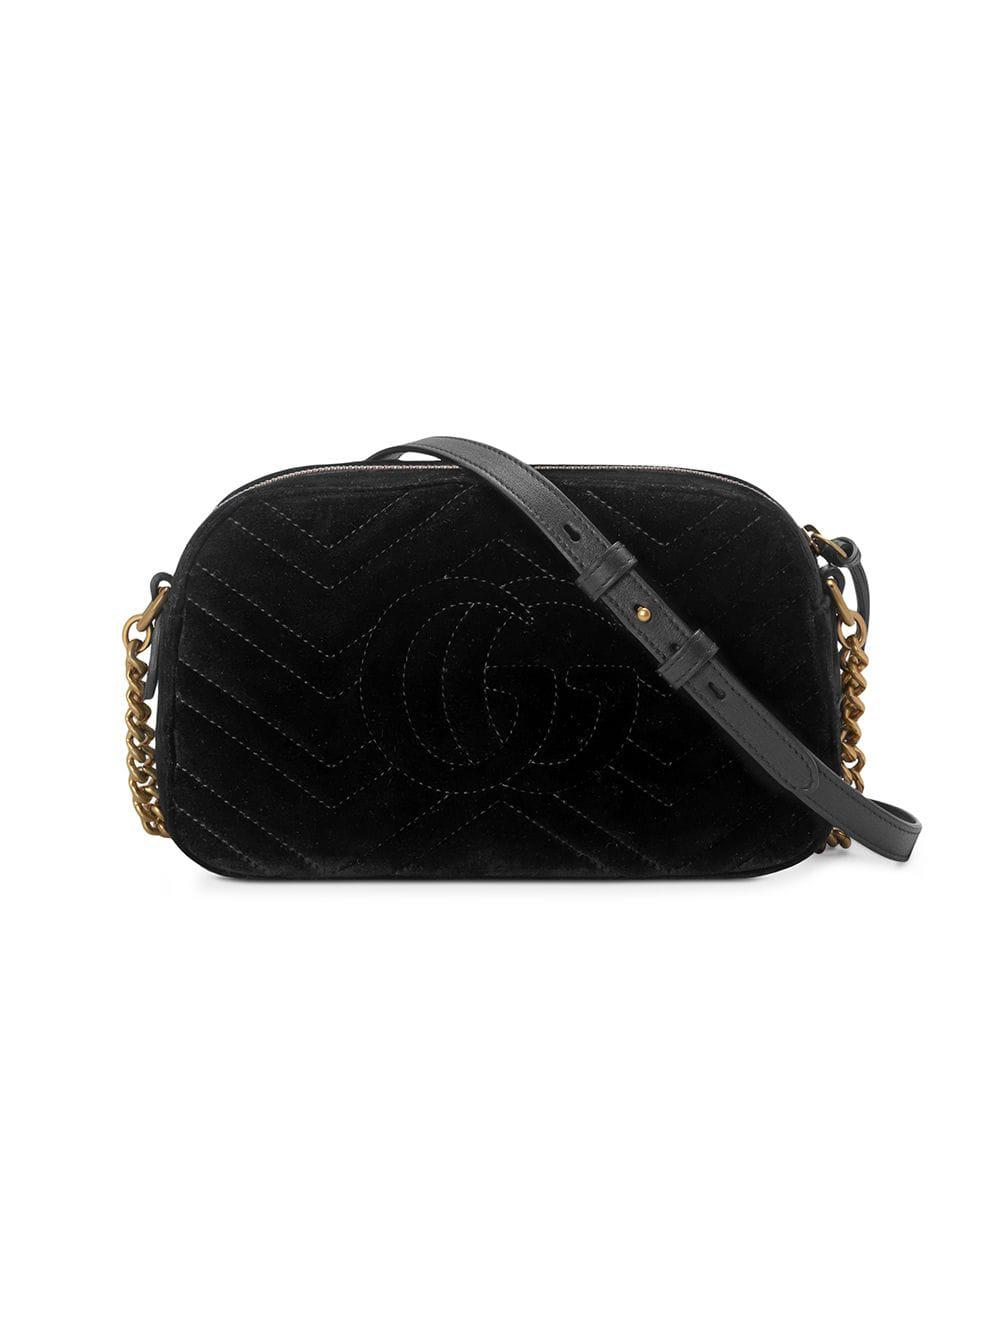 2d712f35ed75d Gucci GG Marmont Small Shoulder Bag in Black - Save 16% - Lyst